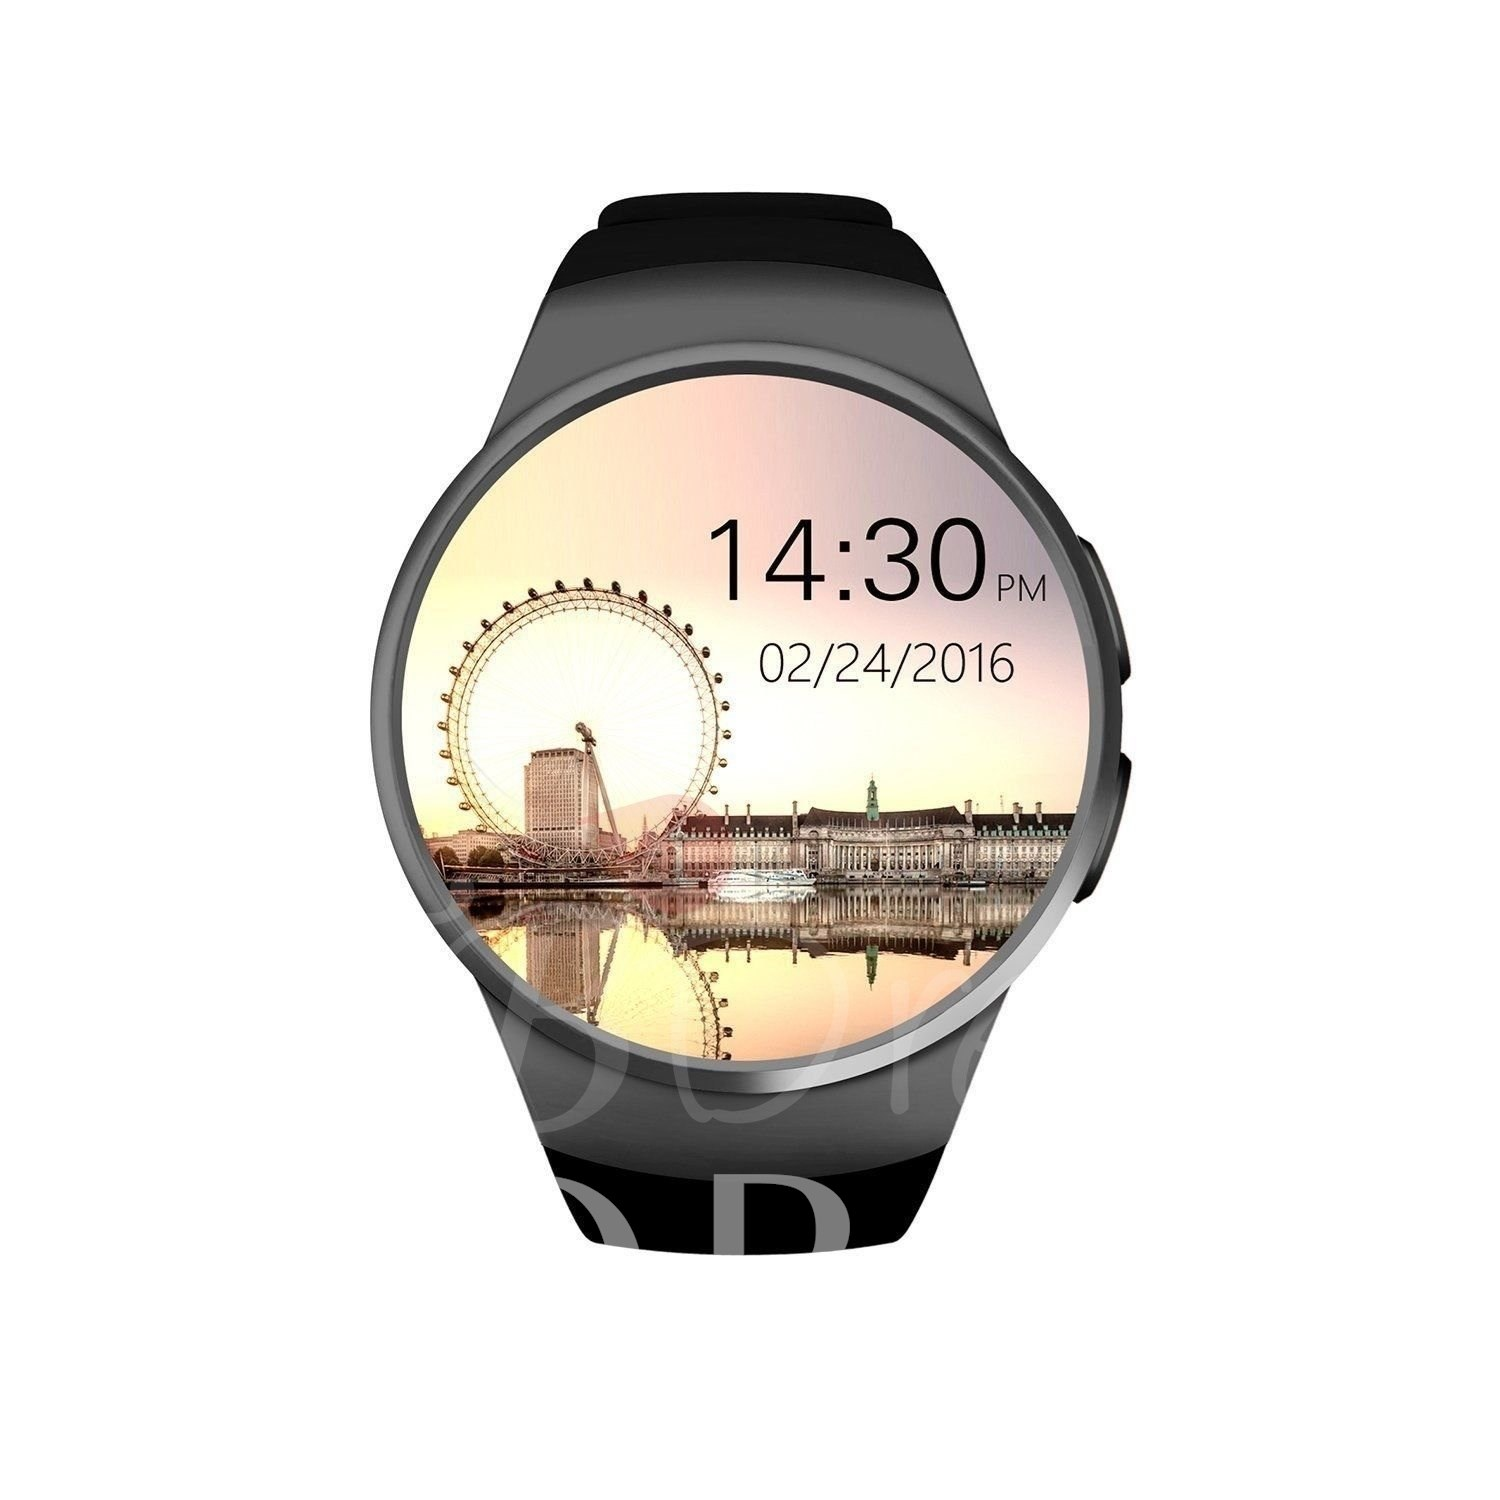 Kw18 bluetooth smart watch téléphone support tf & sim carte pour iphone android samsung sony xiaomi